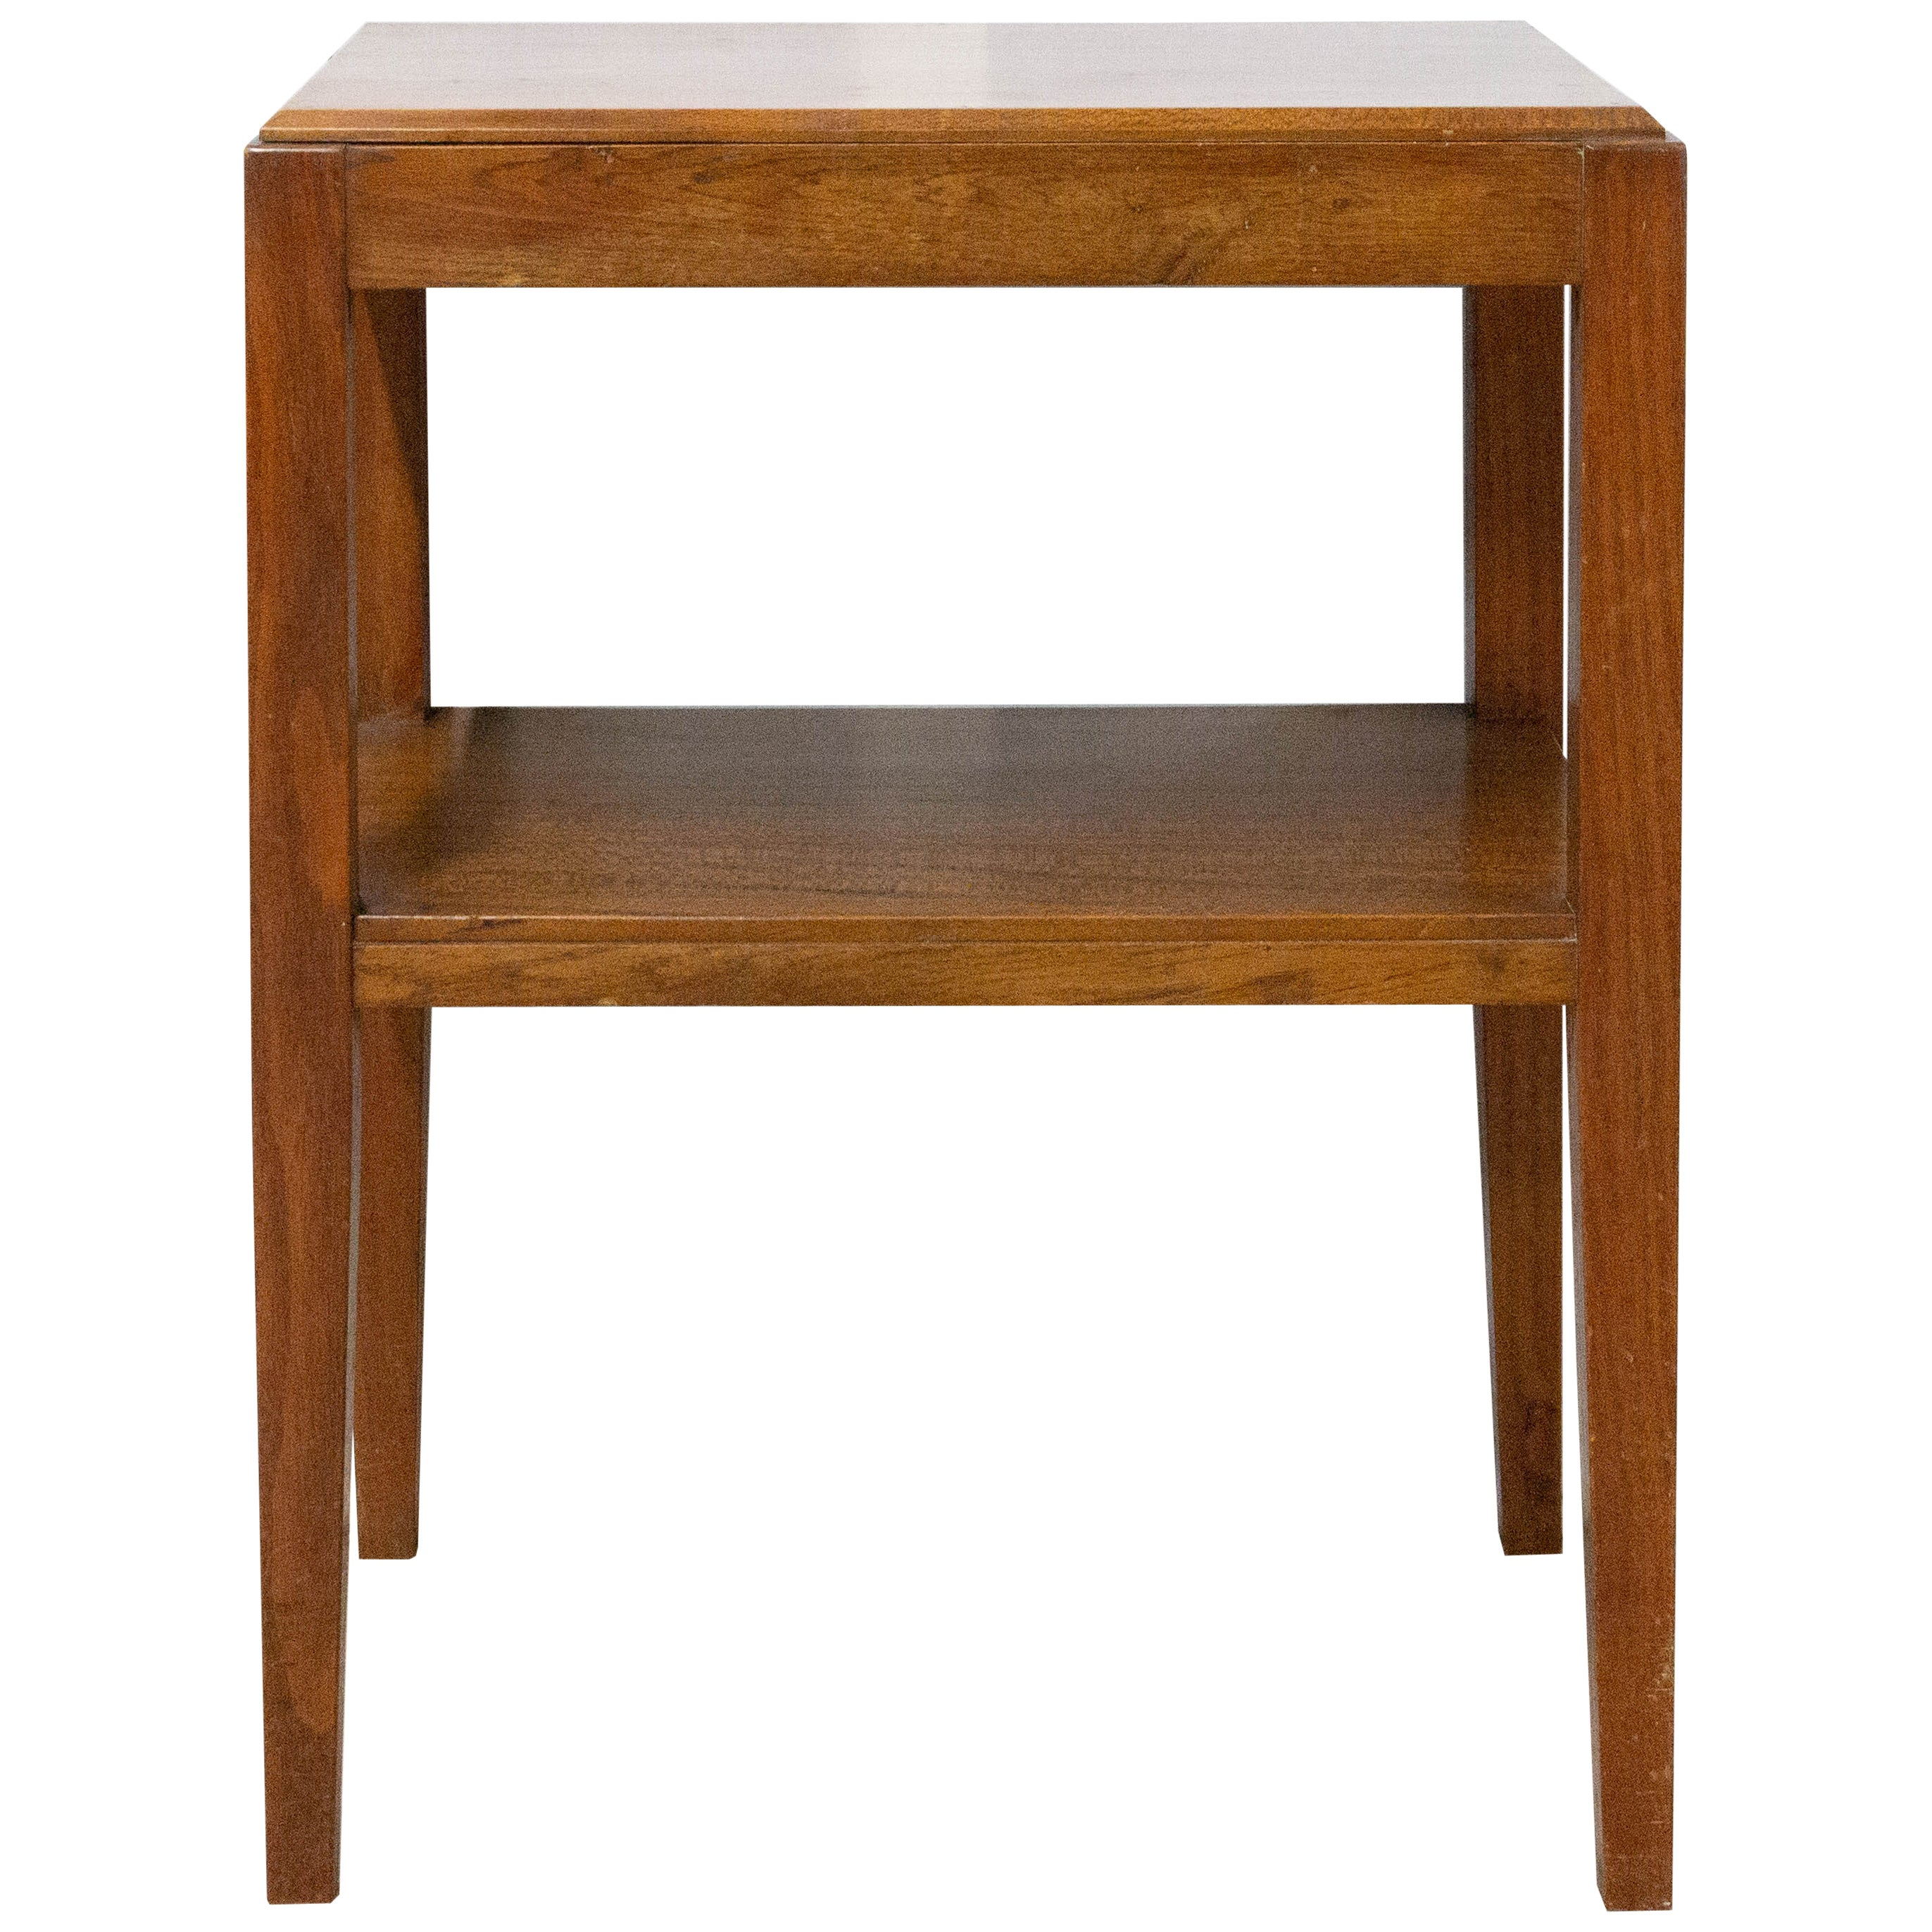 French Beech Console Table 20th Century, circa 1950